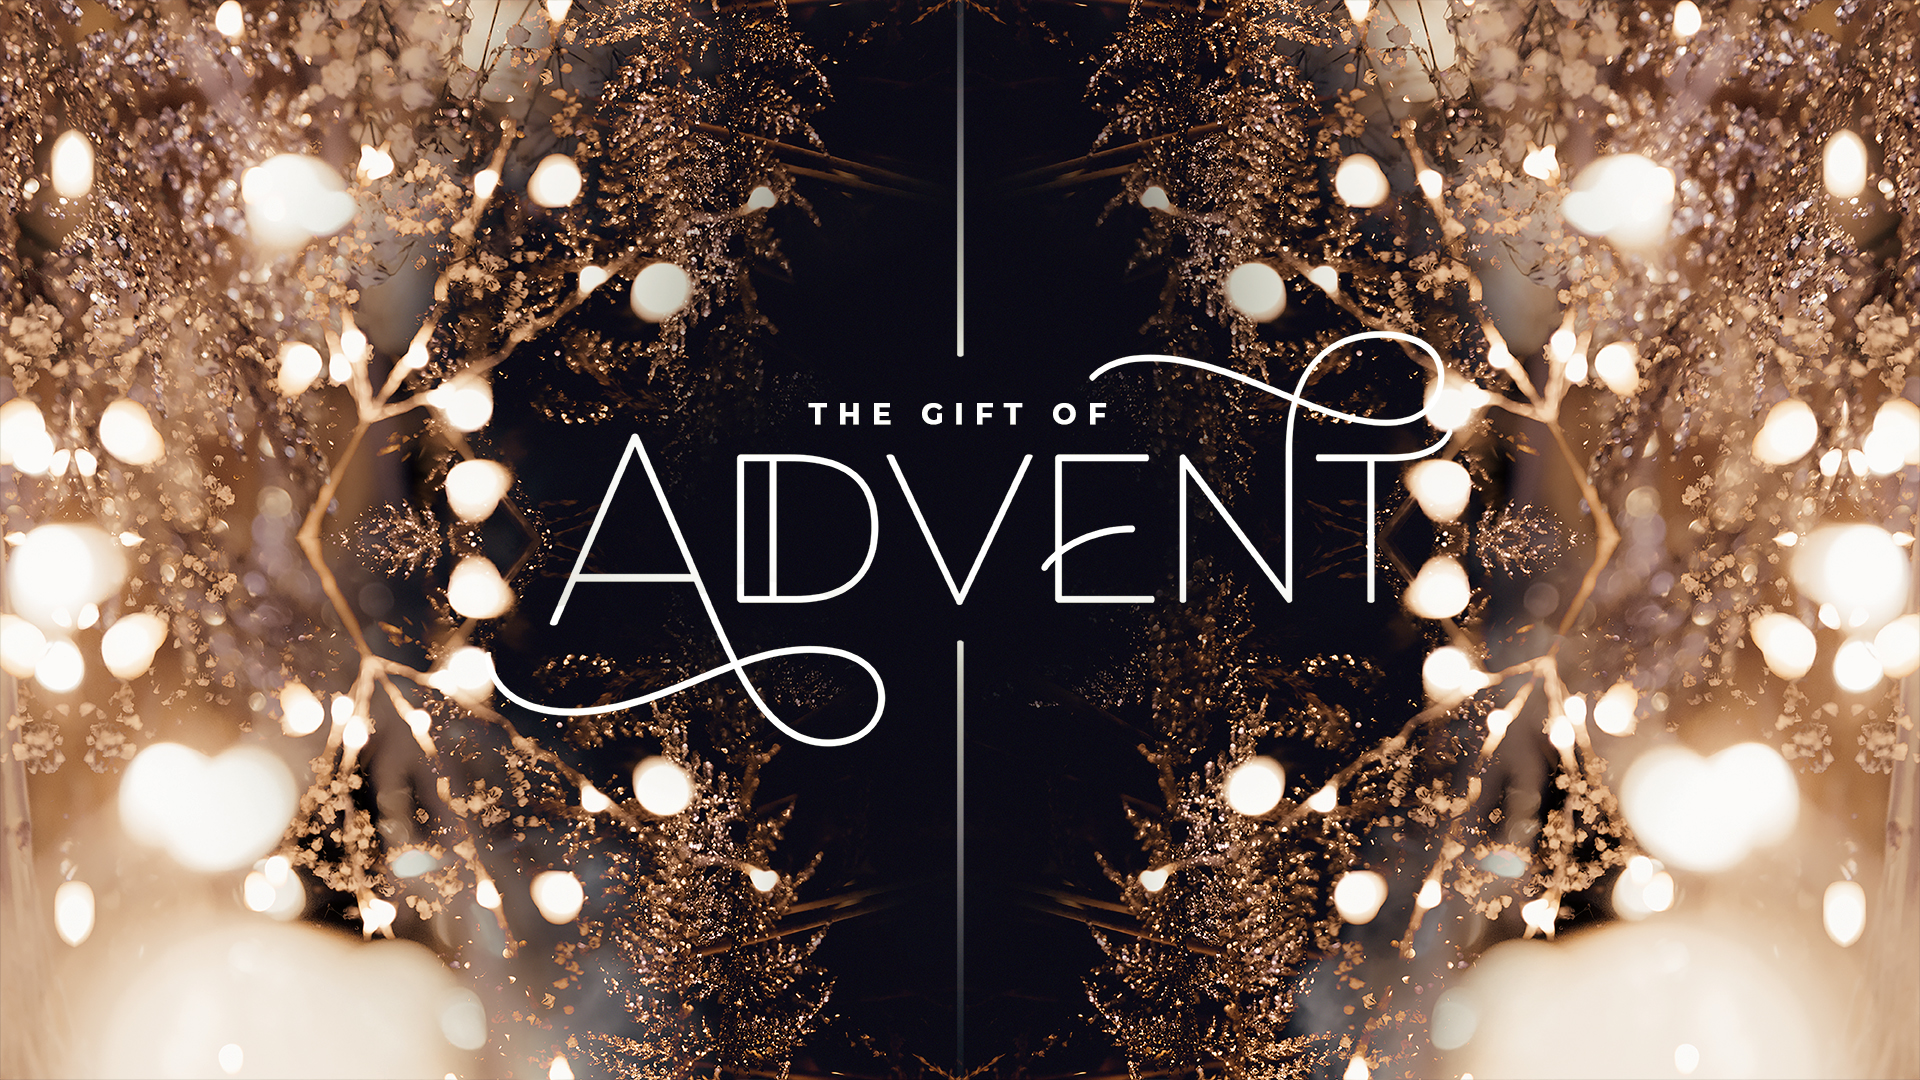 Advent 2: The God of Wisdom